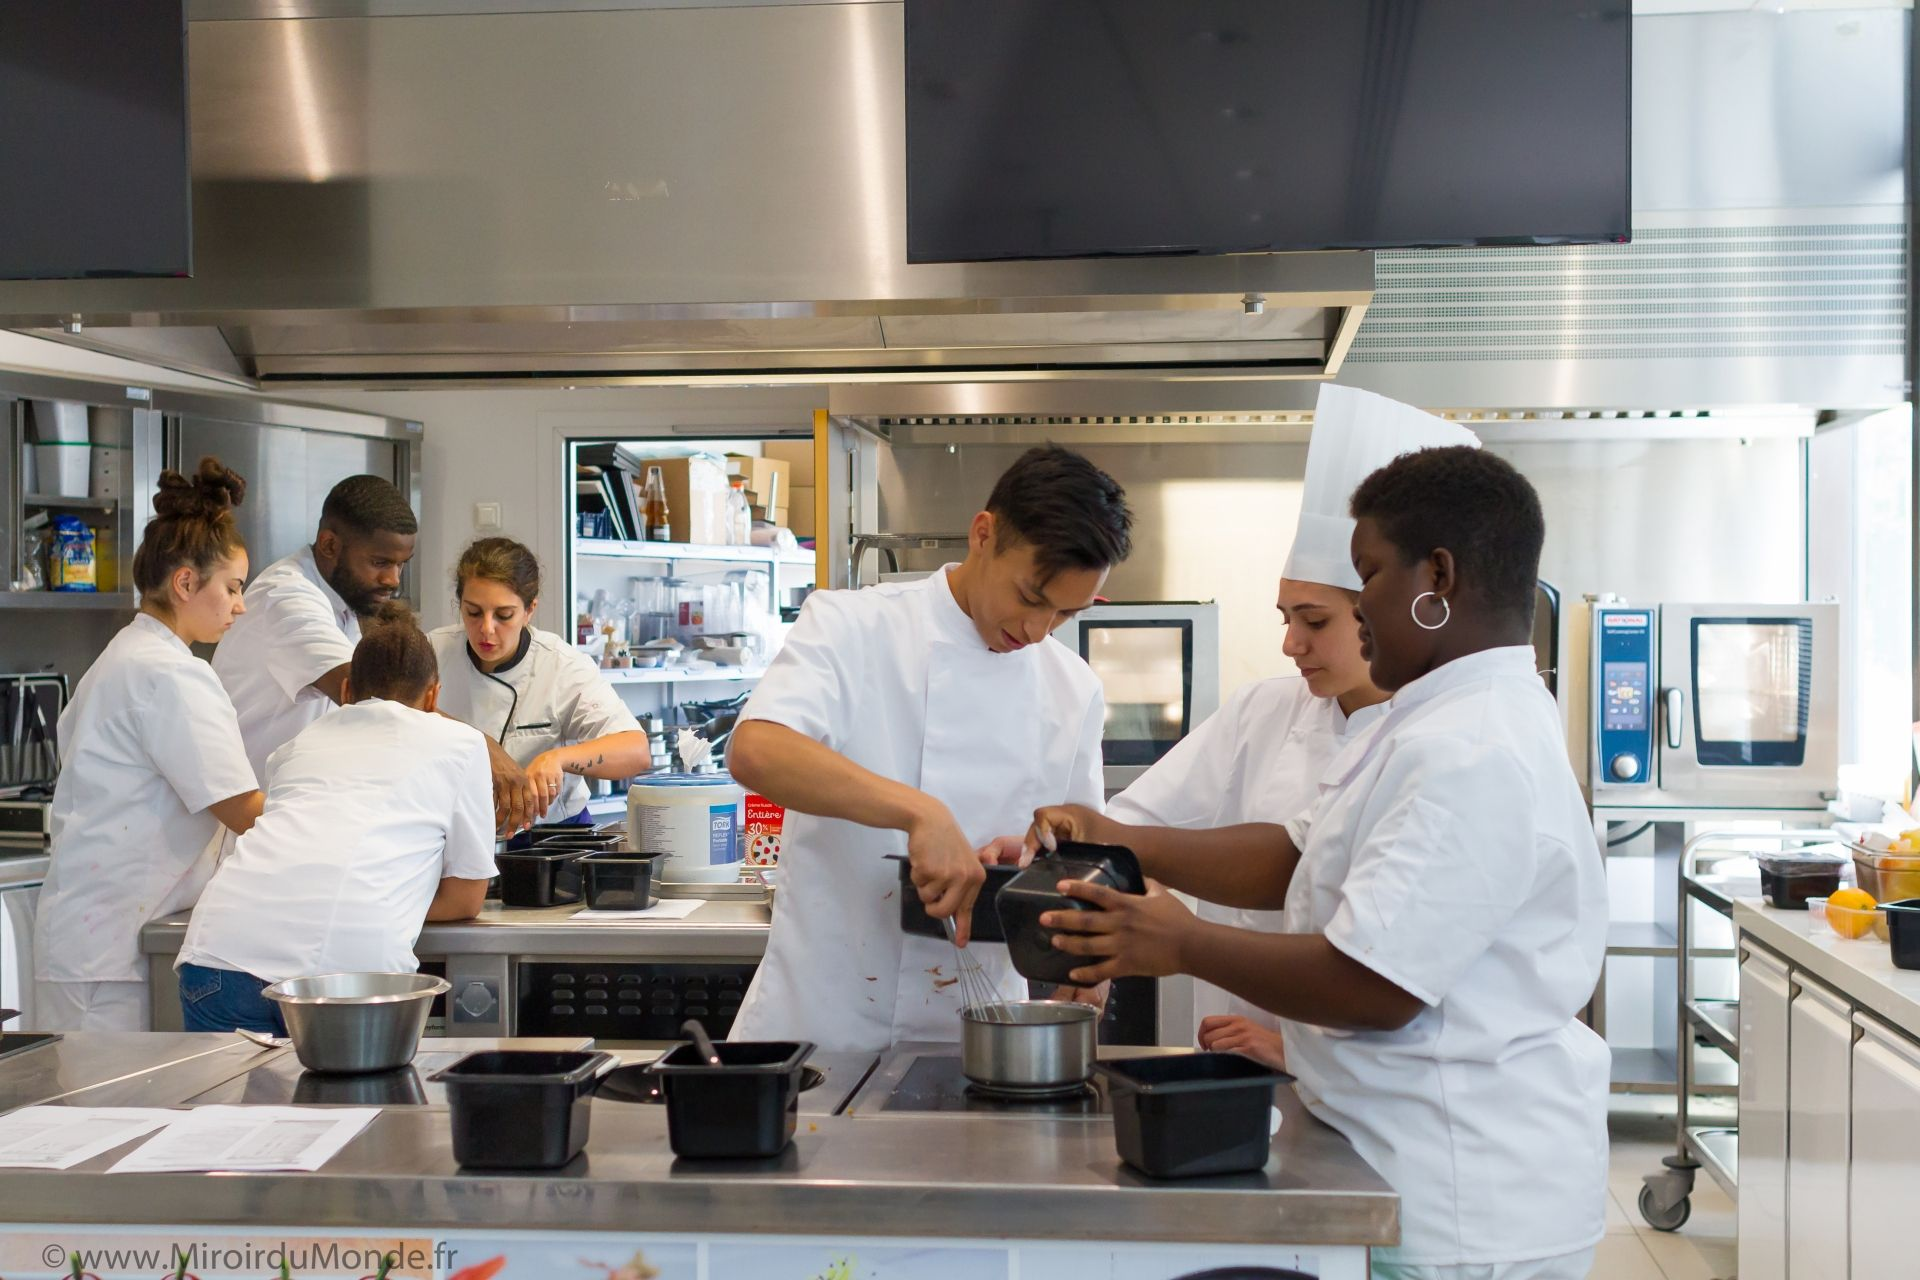 team of chefs working